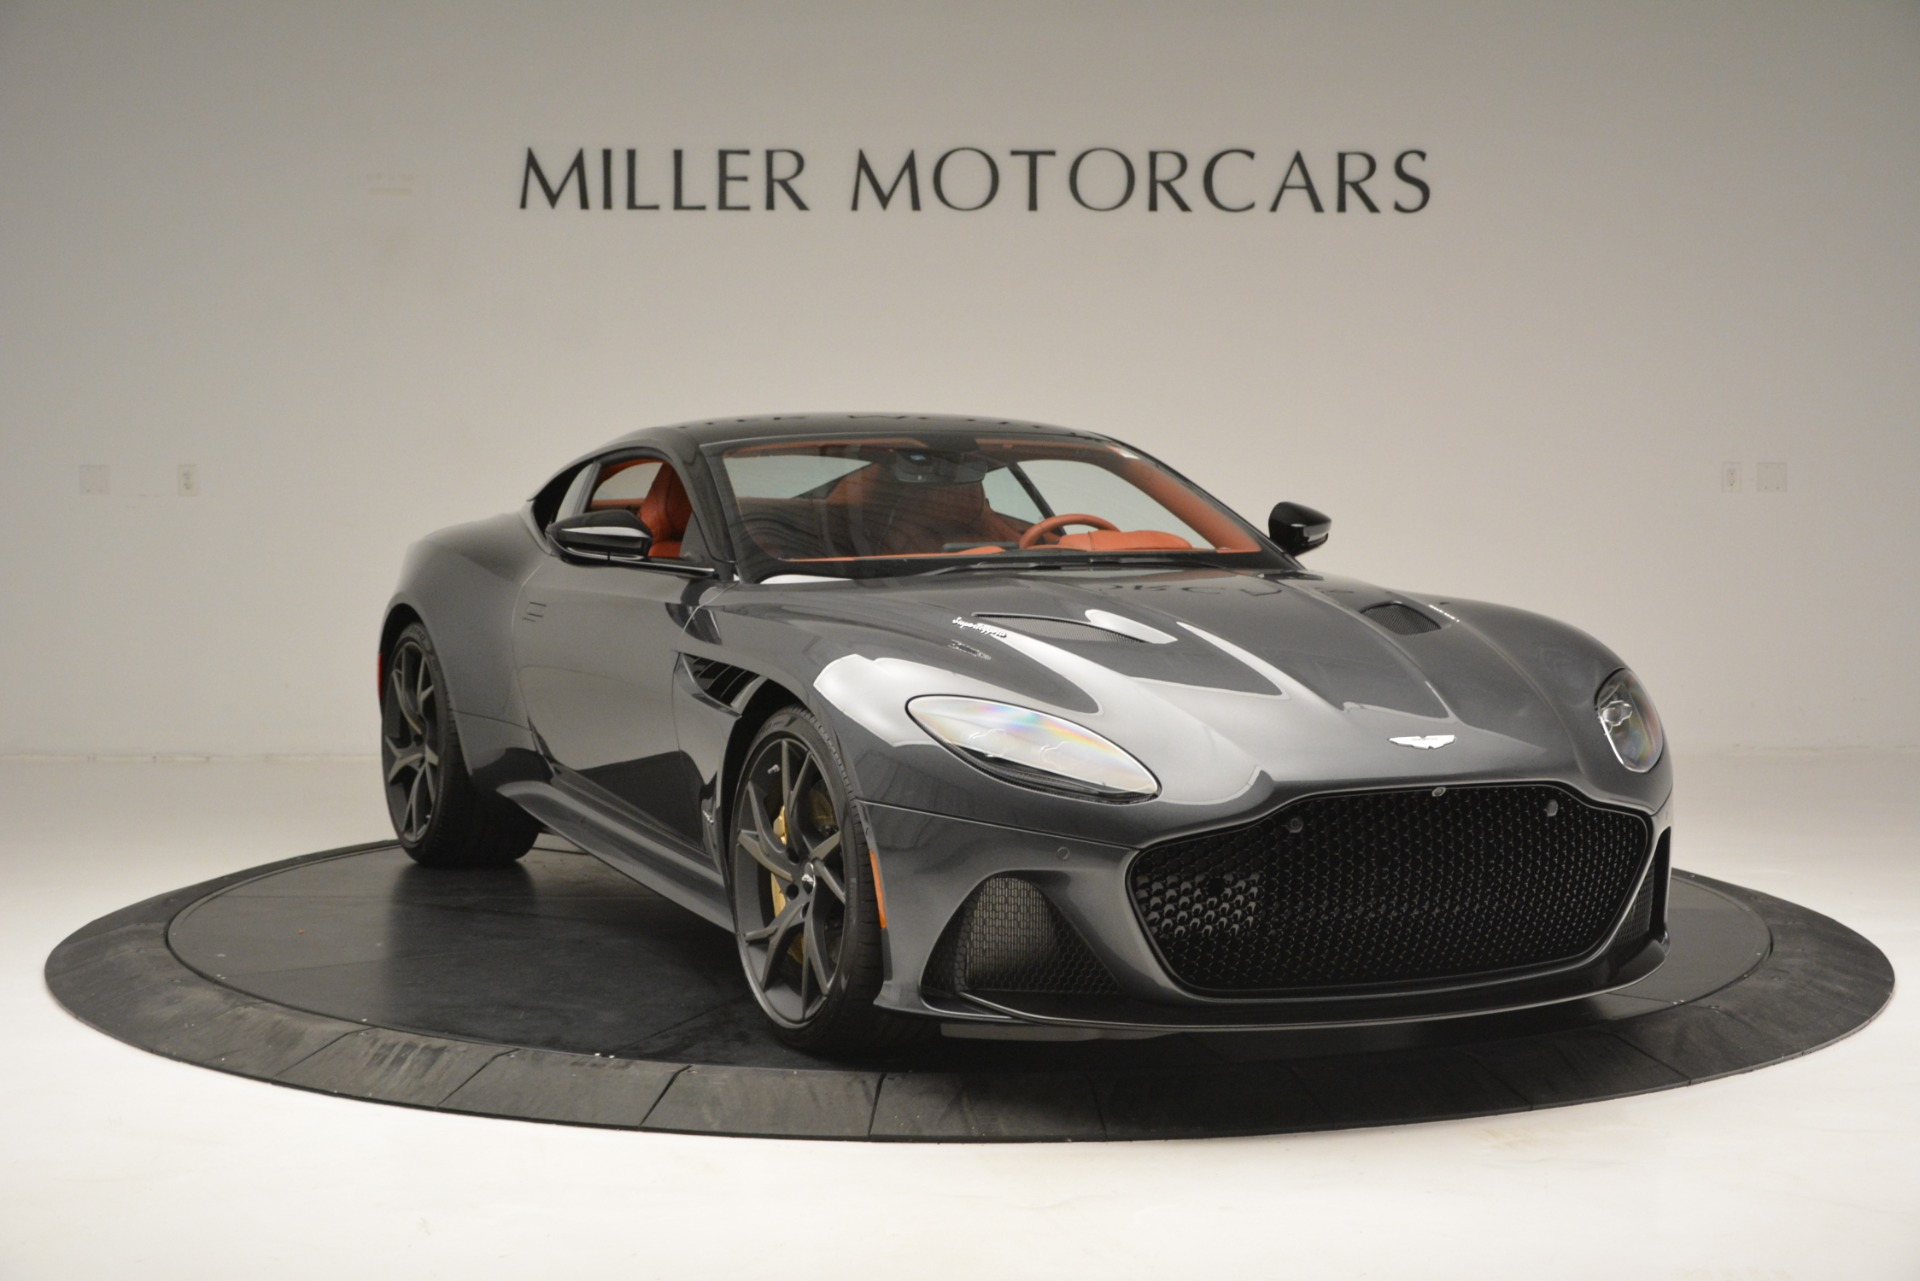 New 2019 Aston Martin DBS Superleggera For Sale In Greenwich, CT 2827_p11